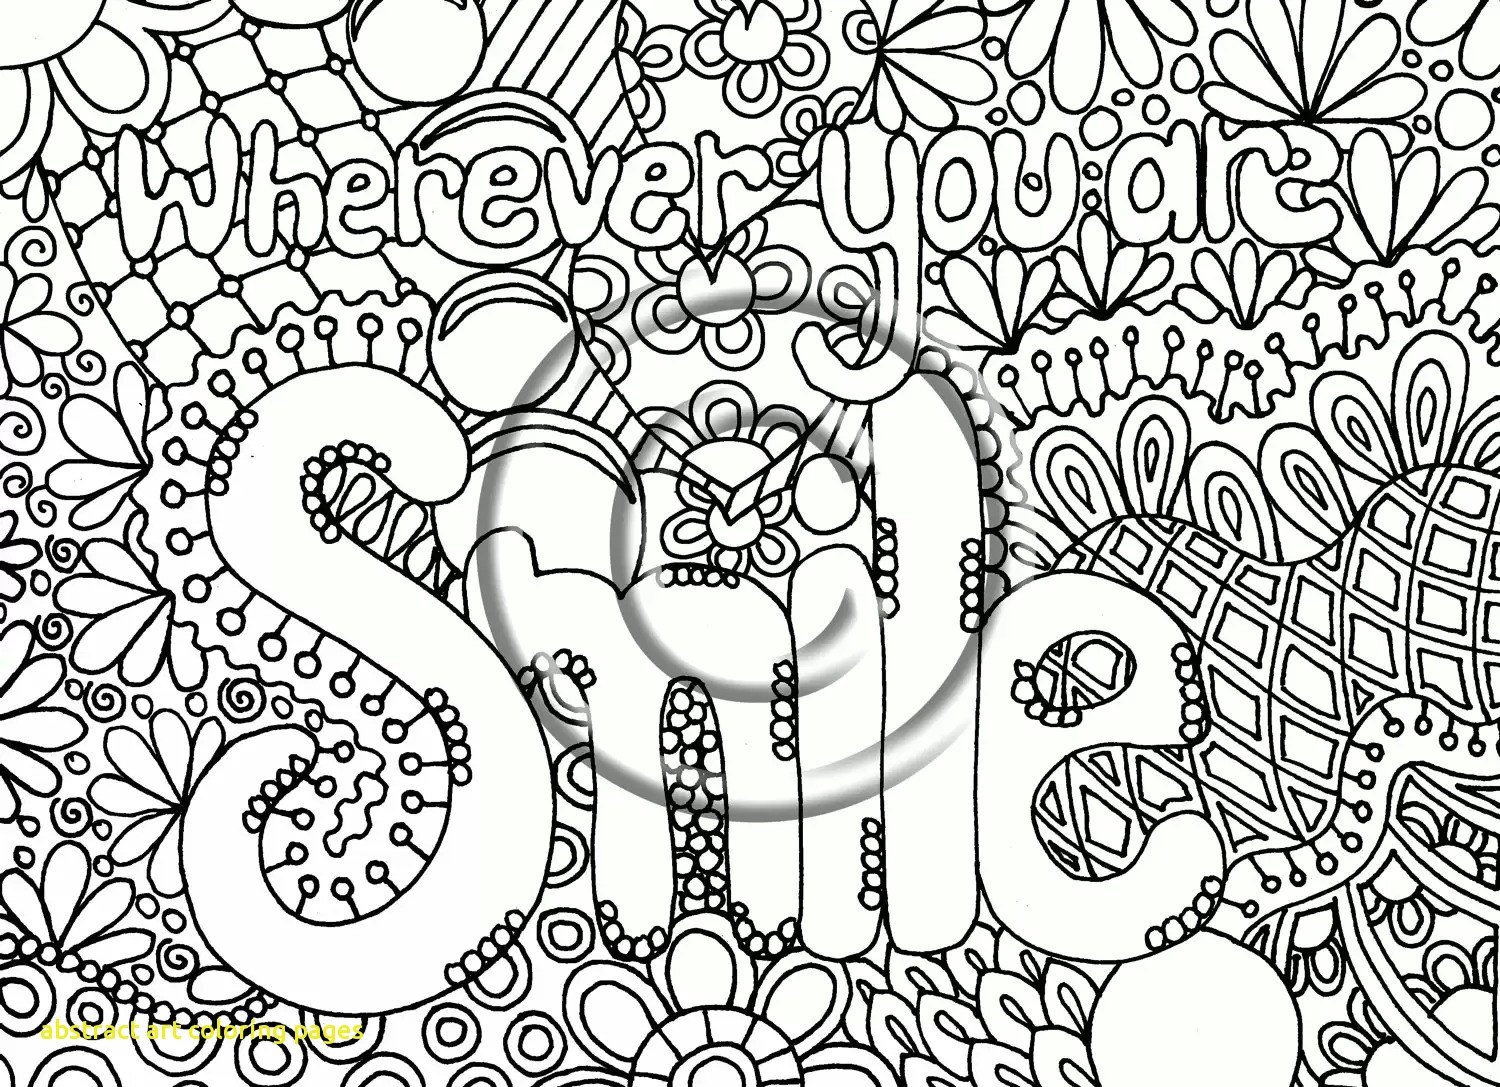 1500x1087 Abstract Art Coloring Pages With Coloring Pages Abstract Art